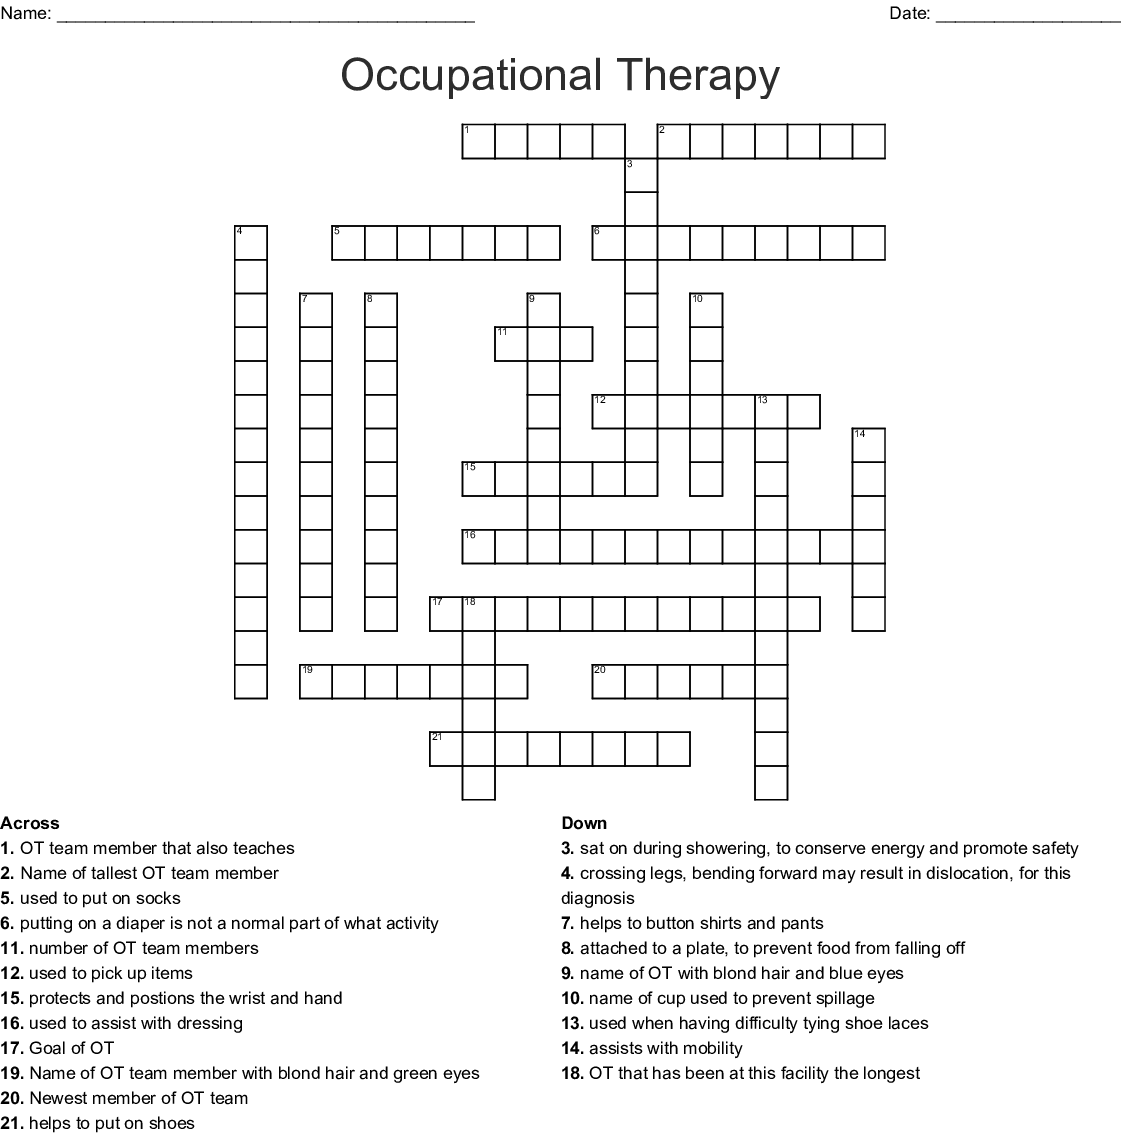 Occupational Therapy Crossword Wordmint